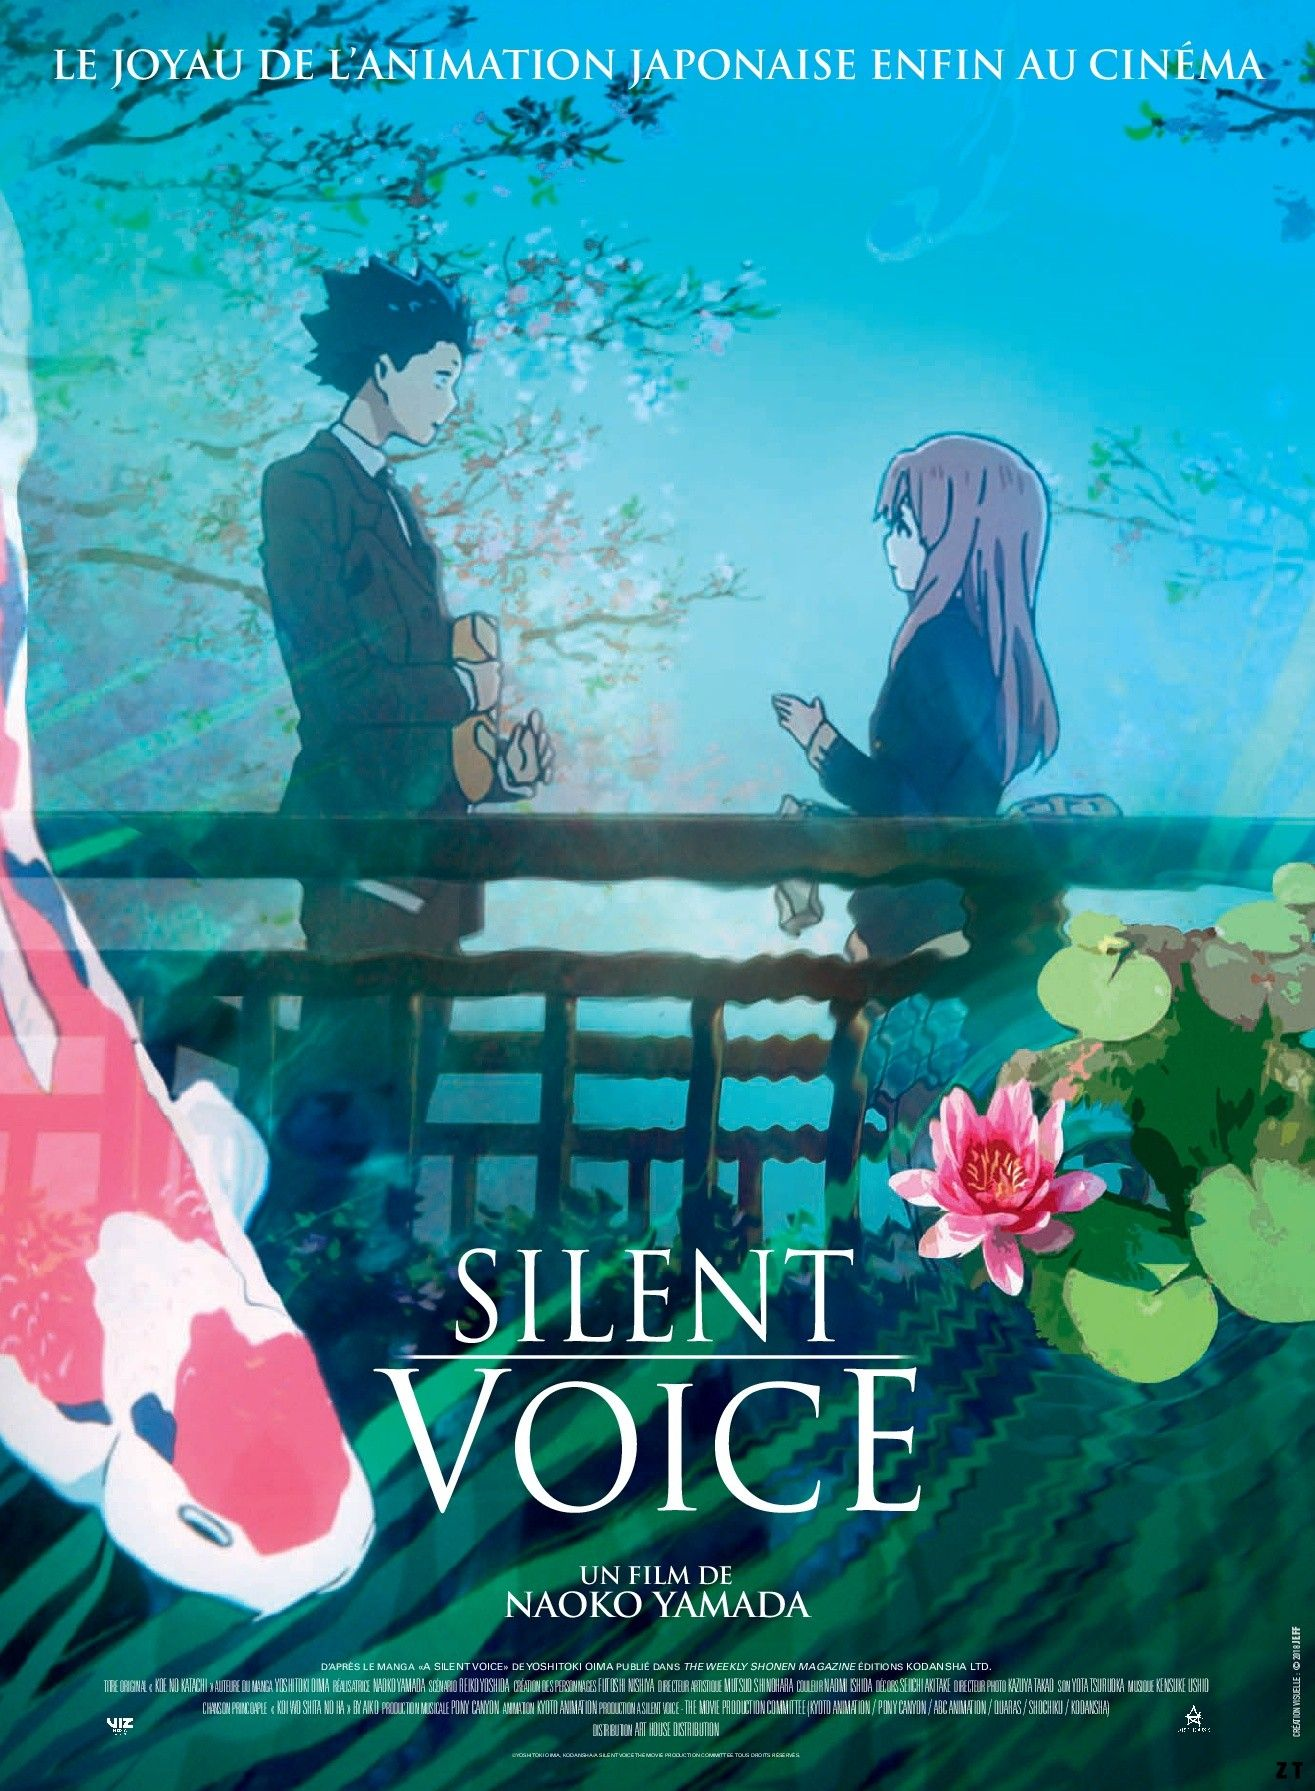 A Silent Voice Film Vostfr : silent, voice, vostfr, Silent, Voice, Streaming, Filmes, Anime,, Animes, Wallpapers,, Anime